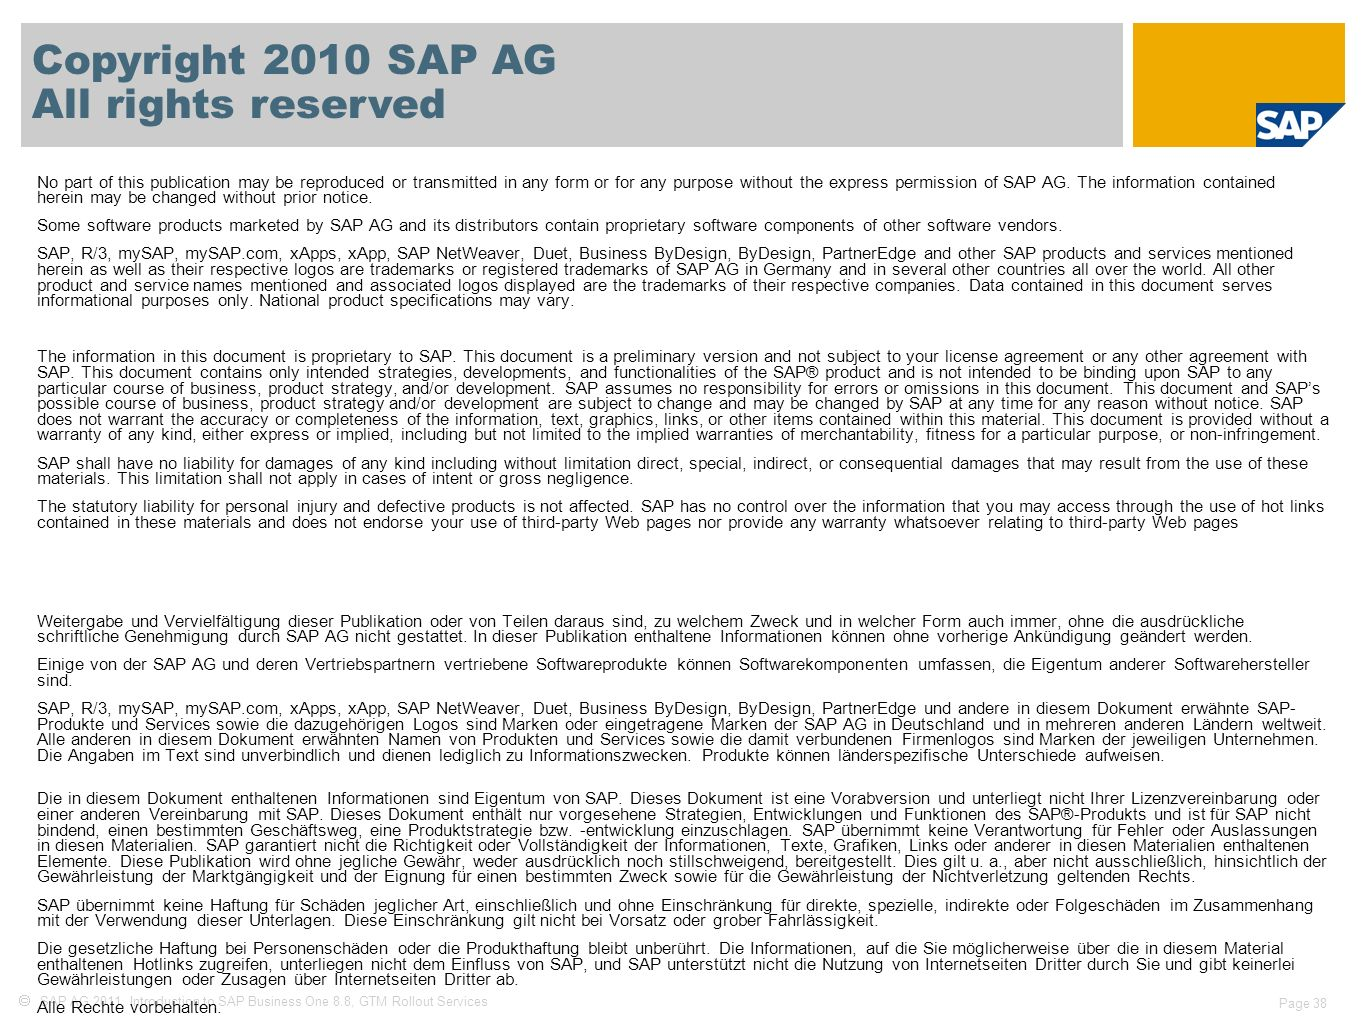  SAP AG 2011, Introduction to SAP Business One 8.8, GTM Rollout Services Page 38 Copyright 2010 SAP AG All rights reserved No part of this publication may be reproduced or transmitted in any form or for any purpose without the express permission of SAP AG.